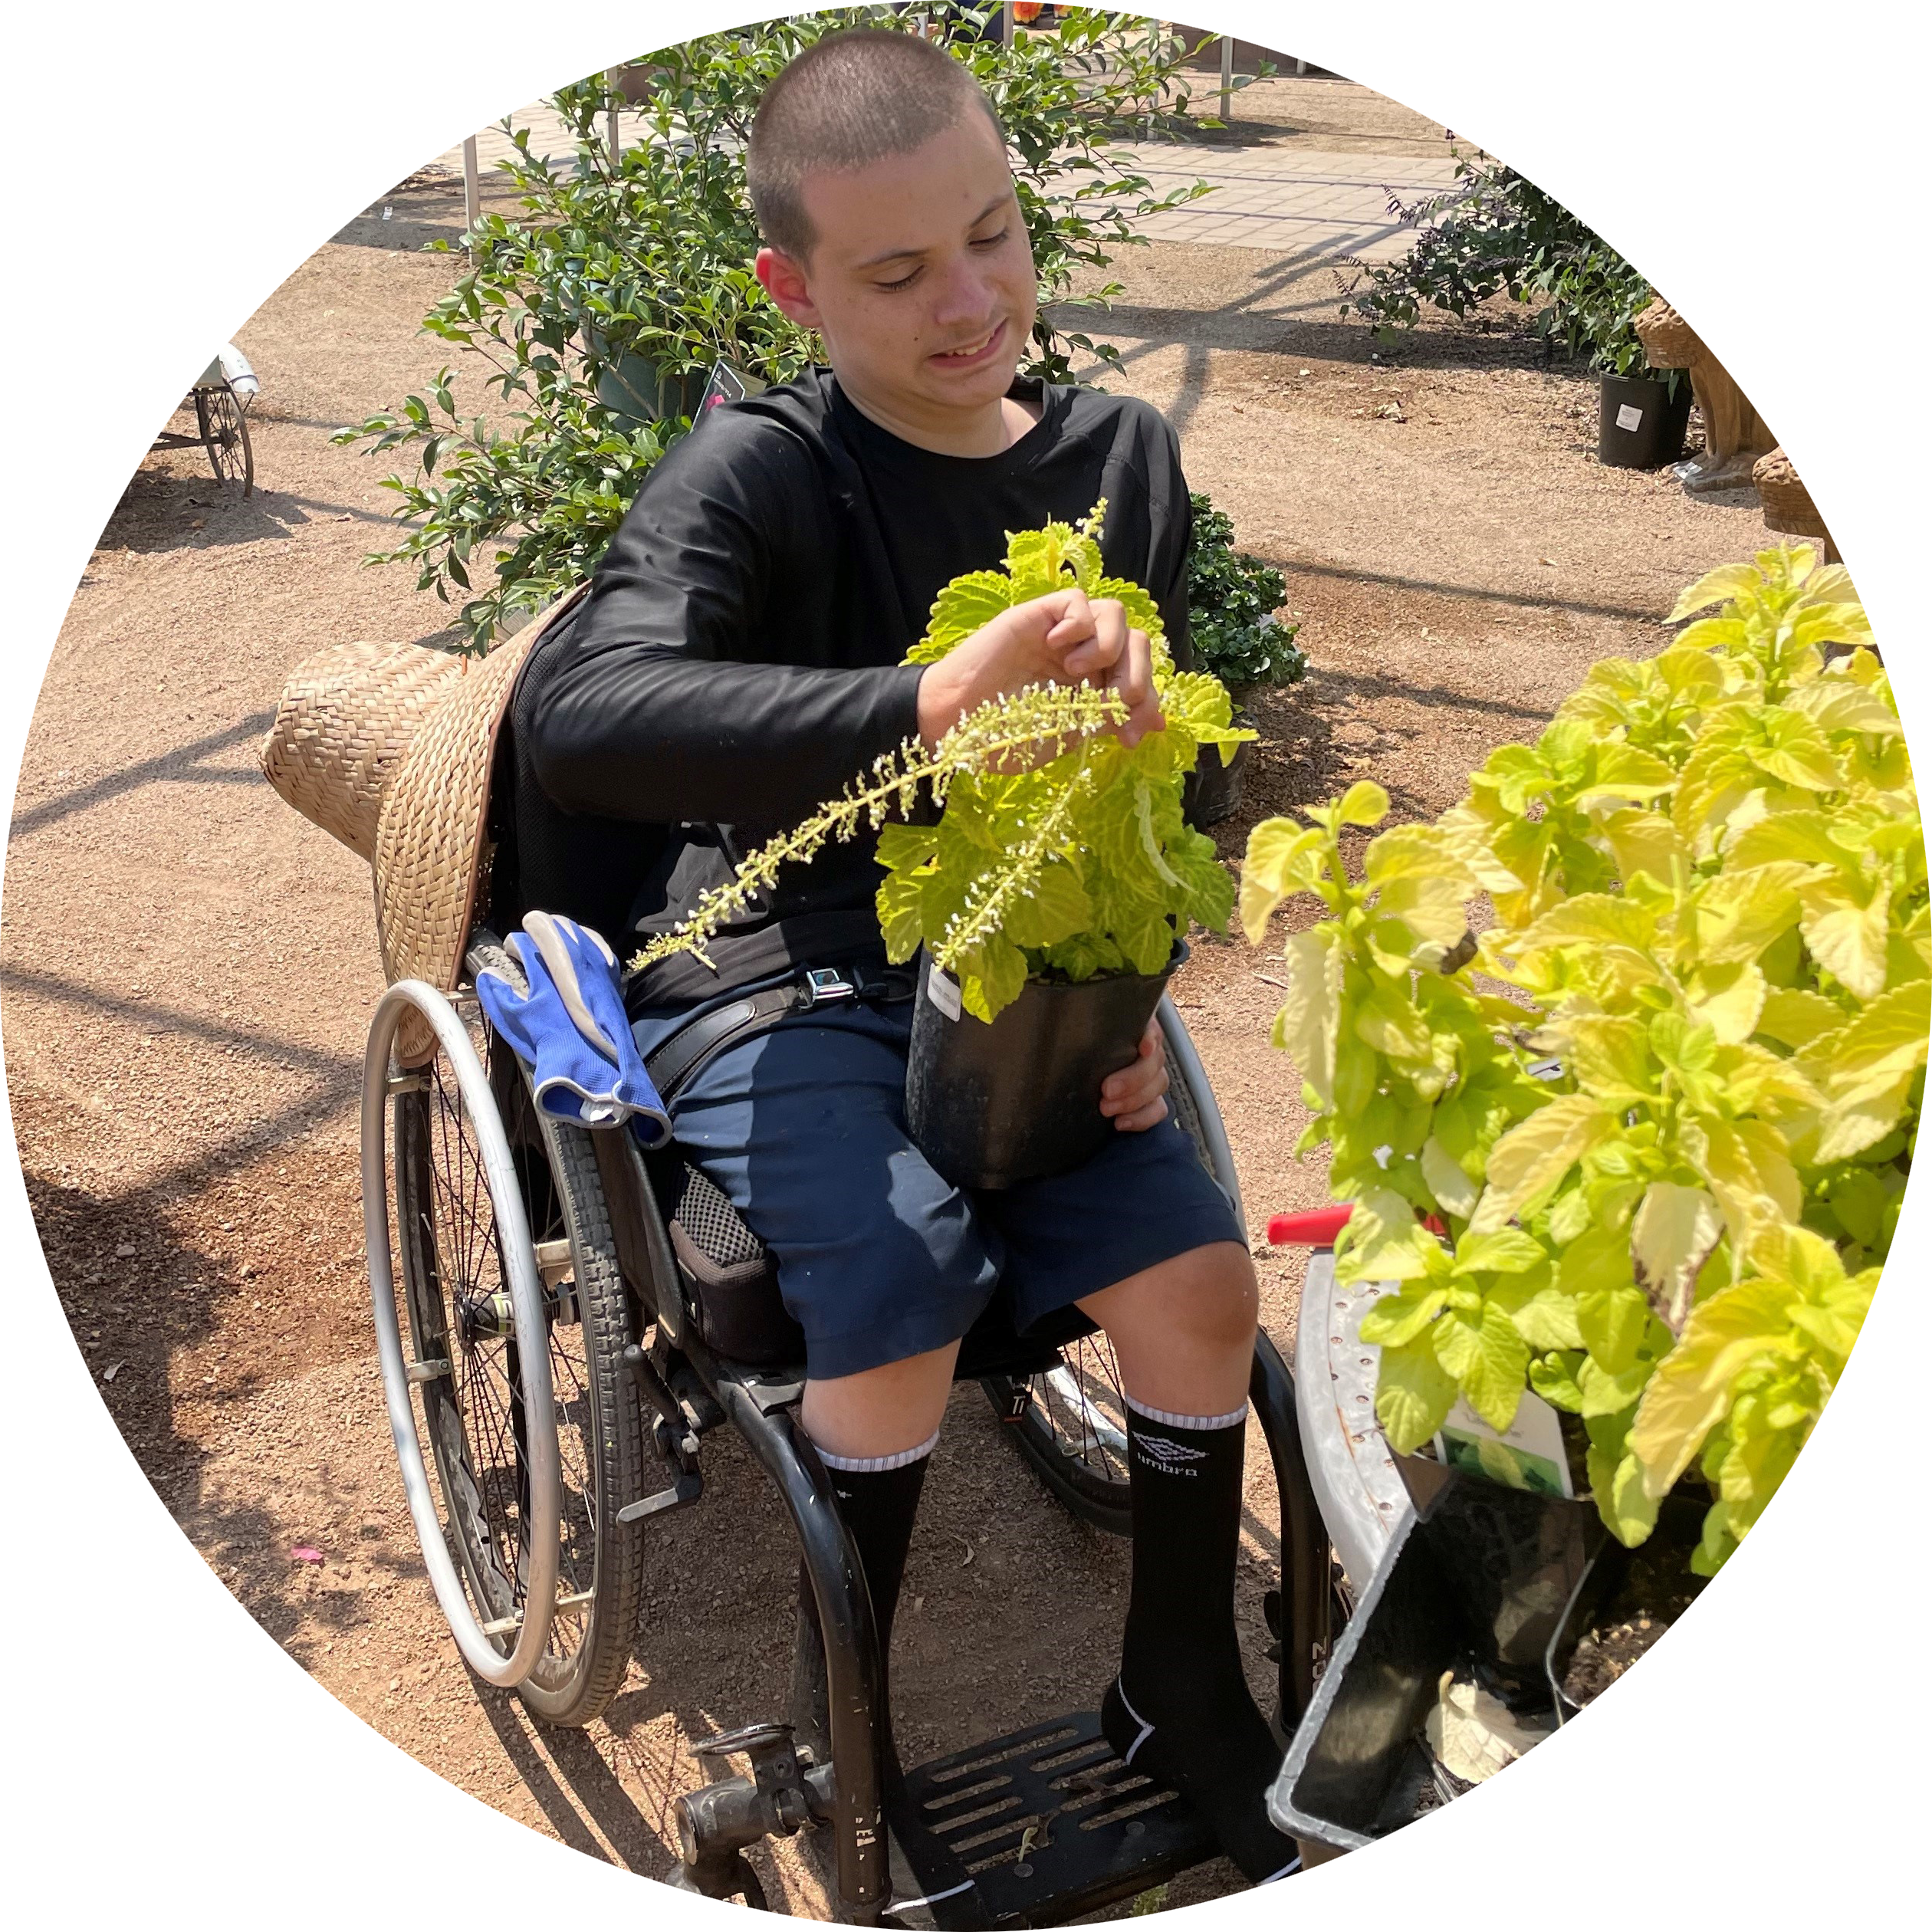 Gage - A young man with short hair in a wheelchair tending to some plants.